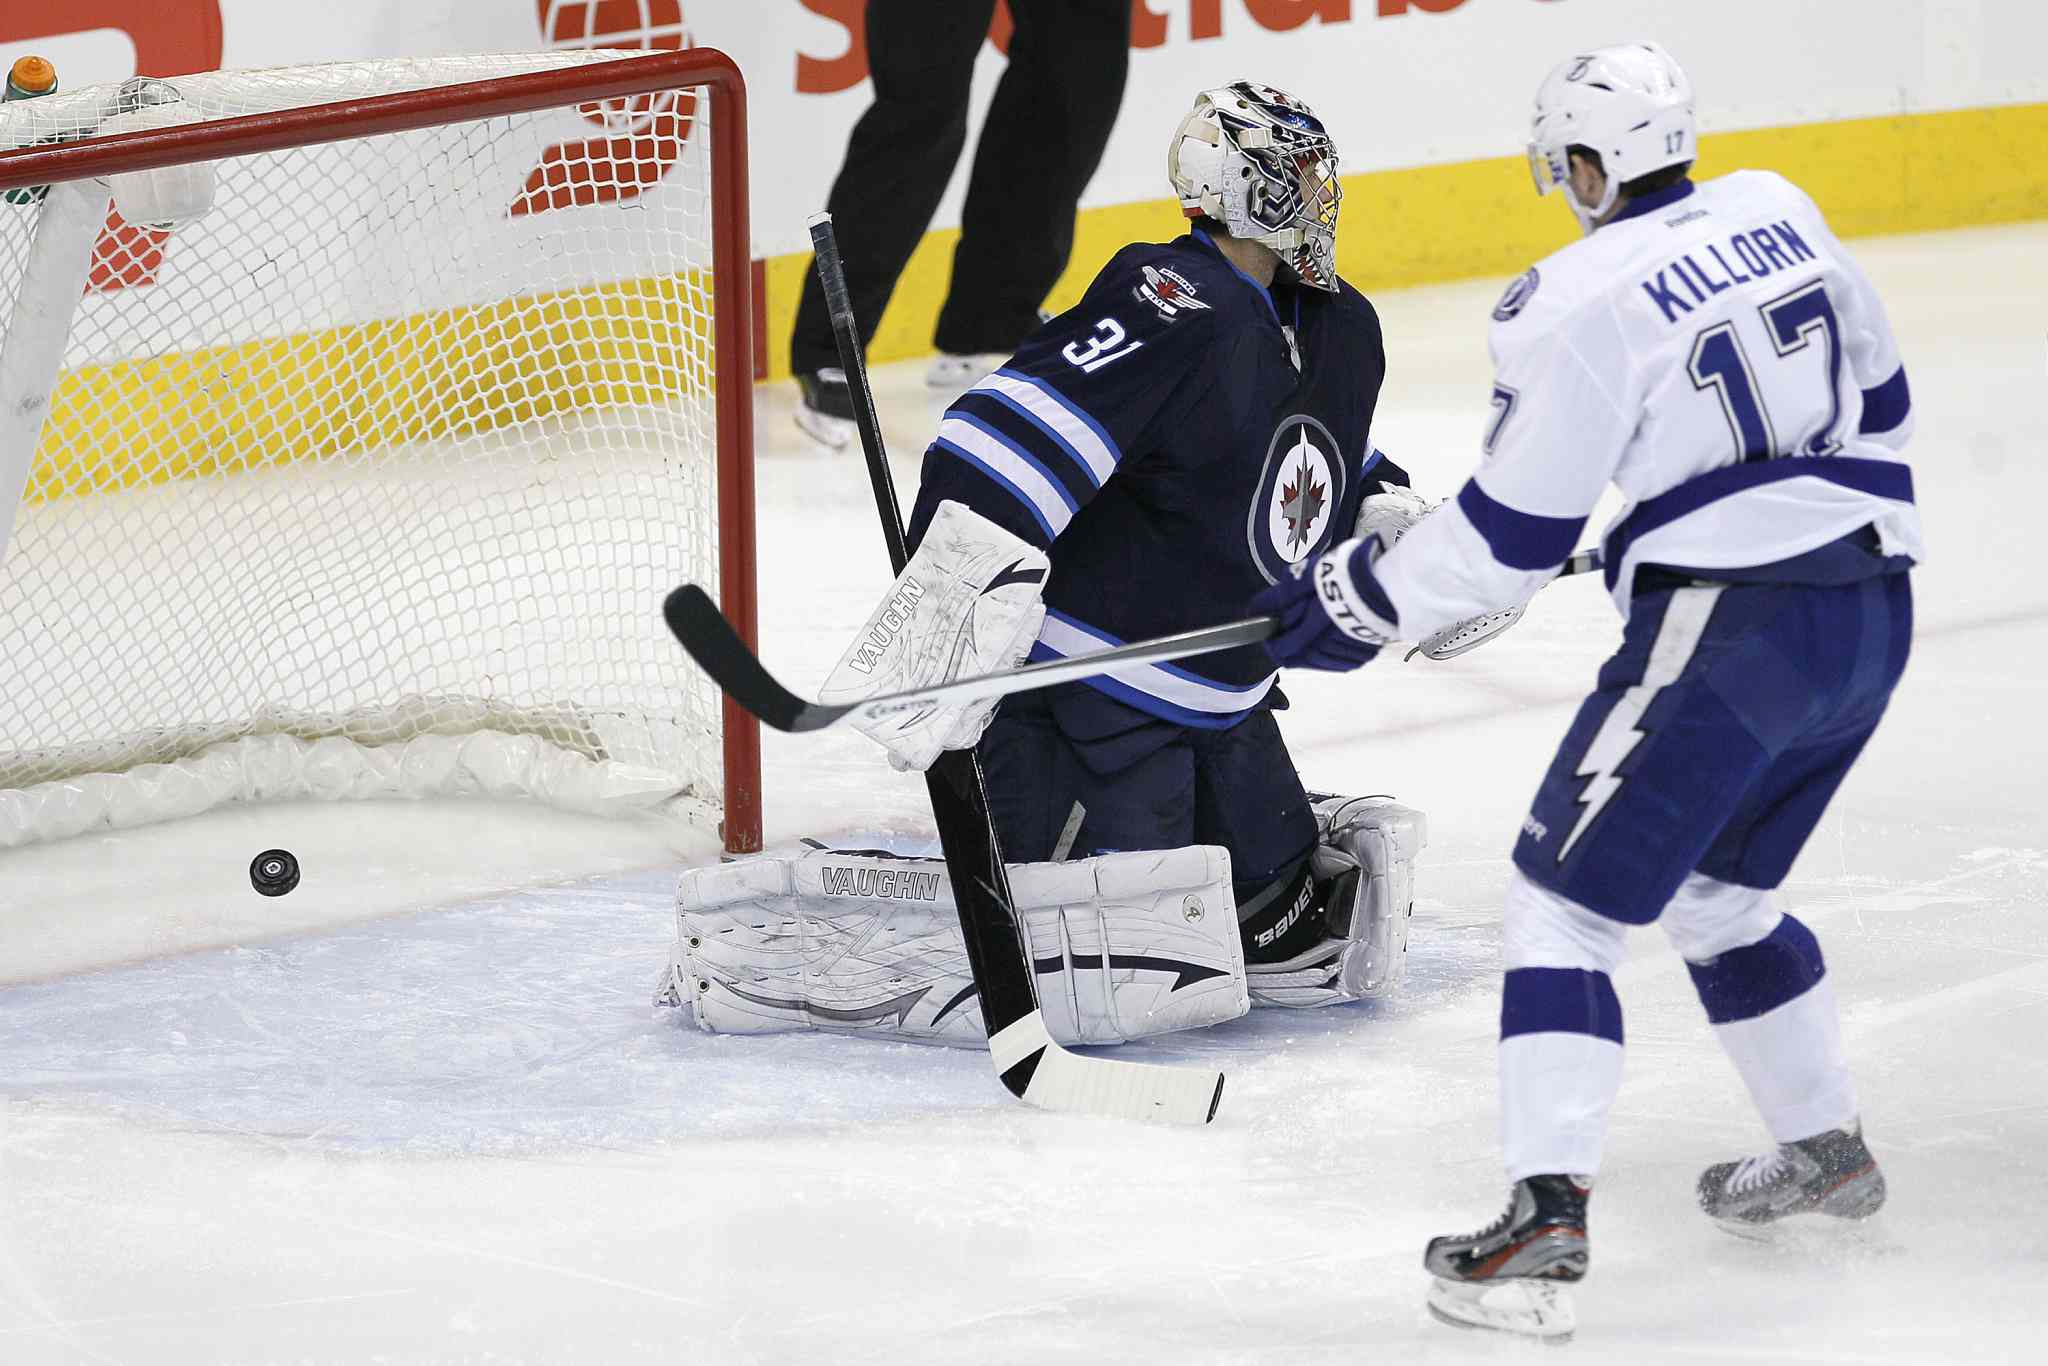 Tampa Bay Lightning's Valtteri Filppula (51) beats Winnipeg Jets' goaltender Ondrej Pavelec (31) on his first shot in the first period Tuesday.